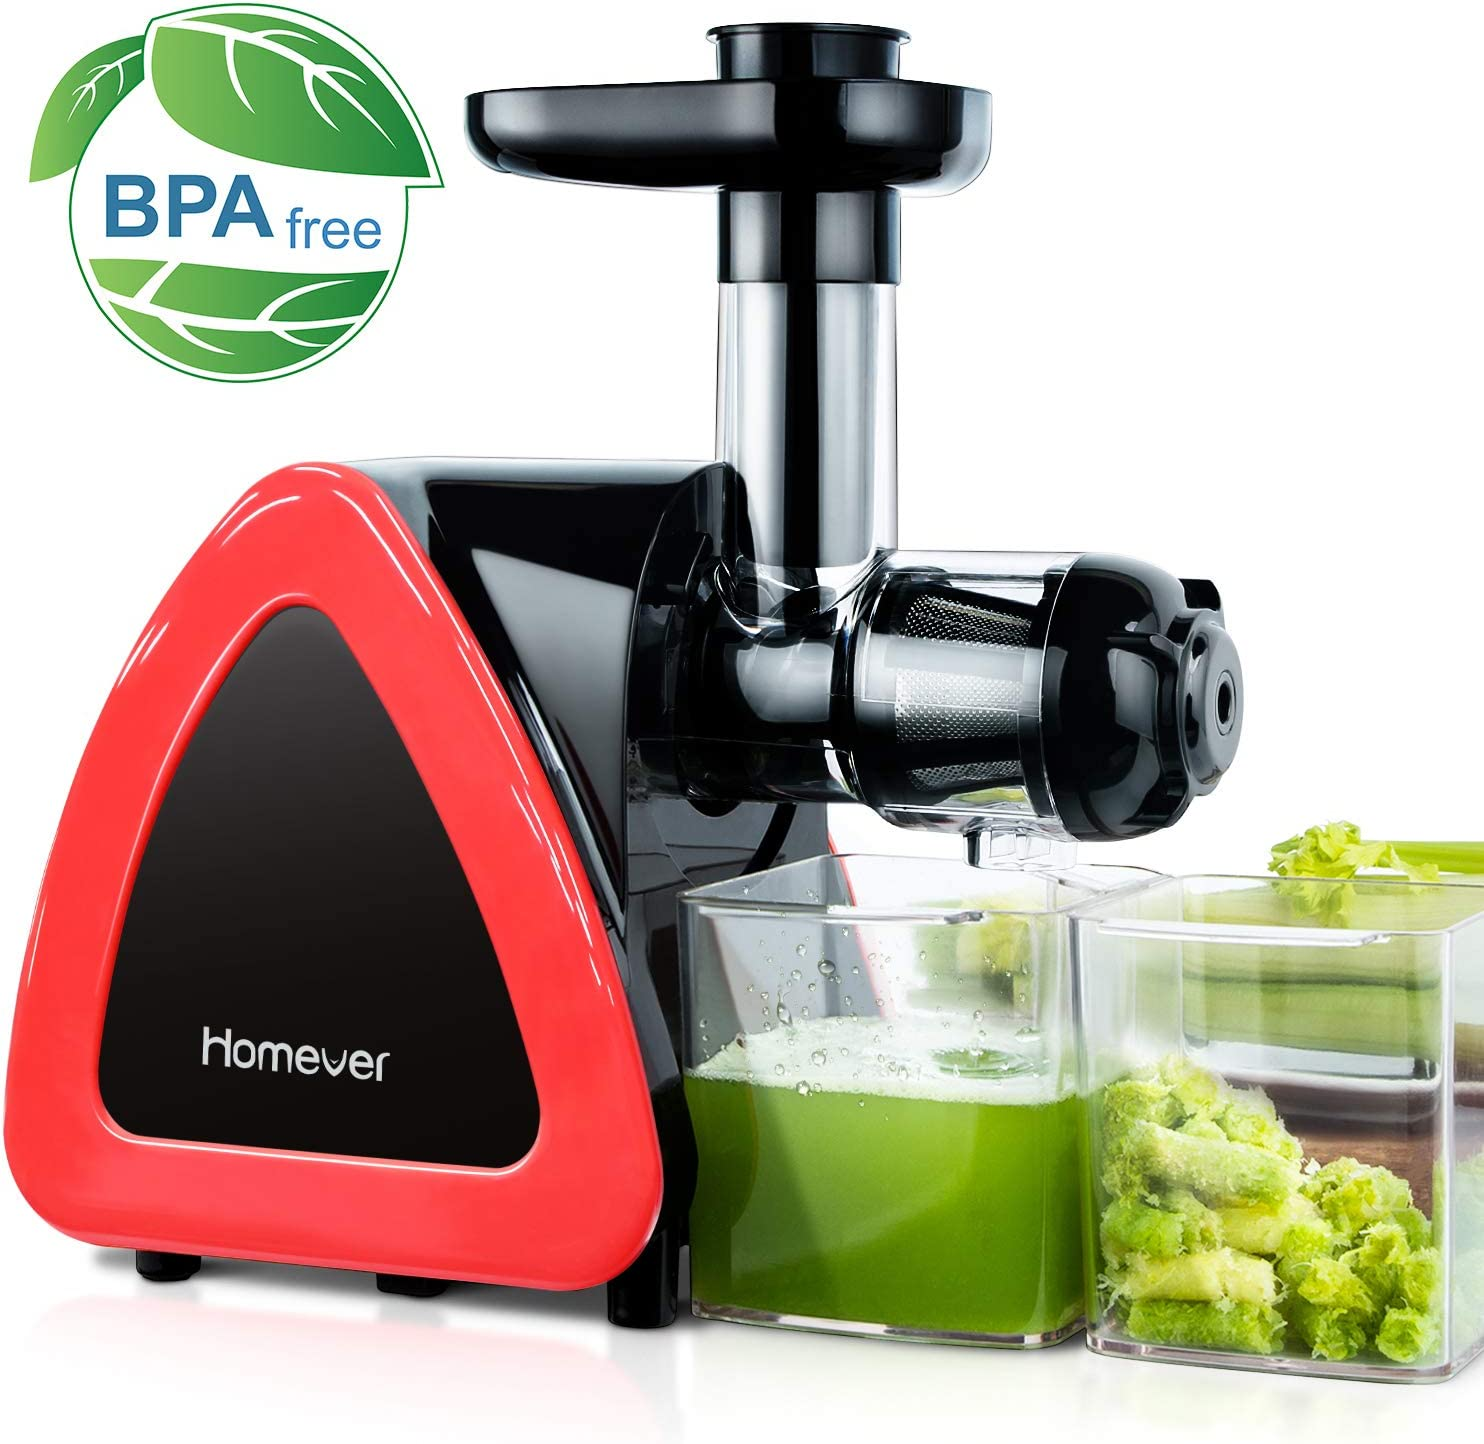 Juicer Machines, HOMEVER Slow Masticating Juicer for Fruits and Vegetables, Quiet Motor, Reverse Function, Easy to Clean Hight Nutrient Cold Press Juicer Machine with Juice Cup Brush, BPA-Free